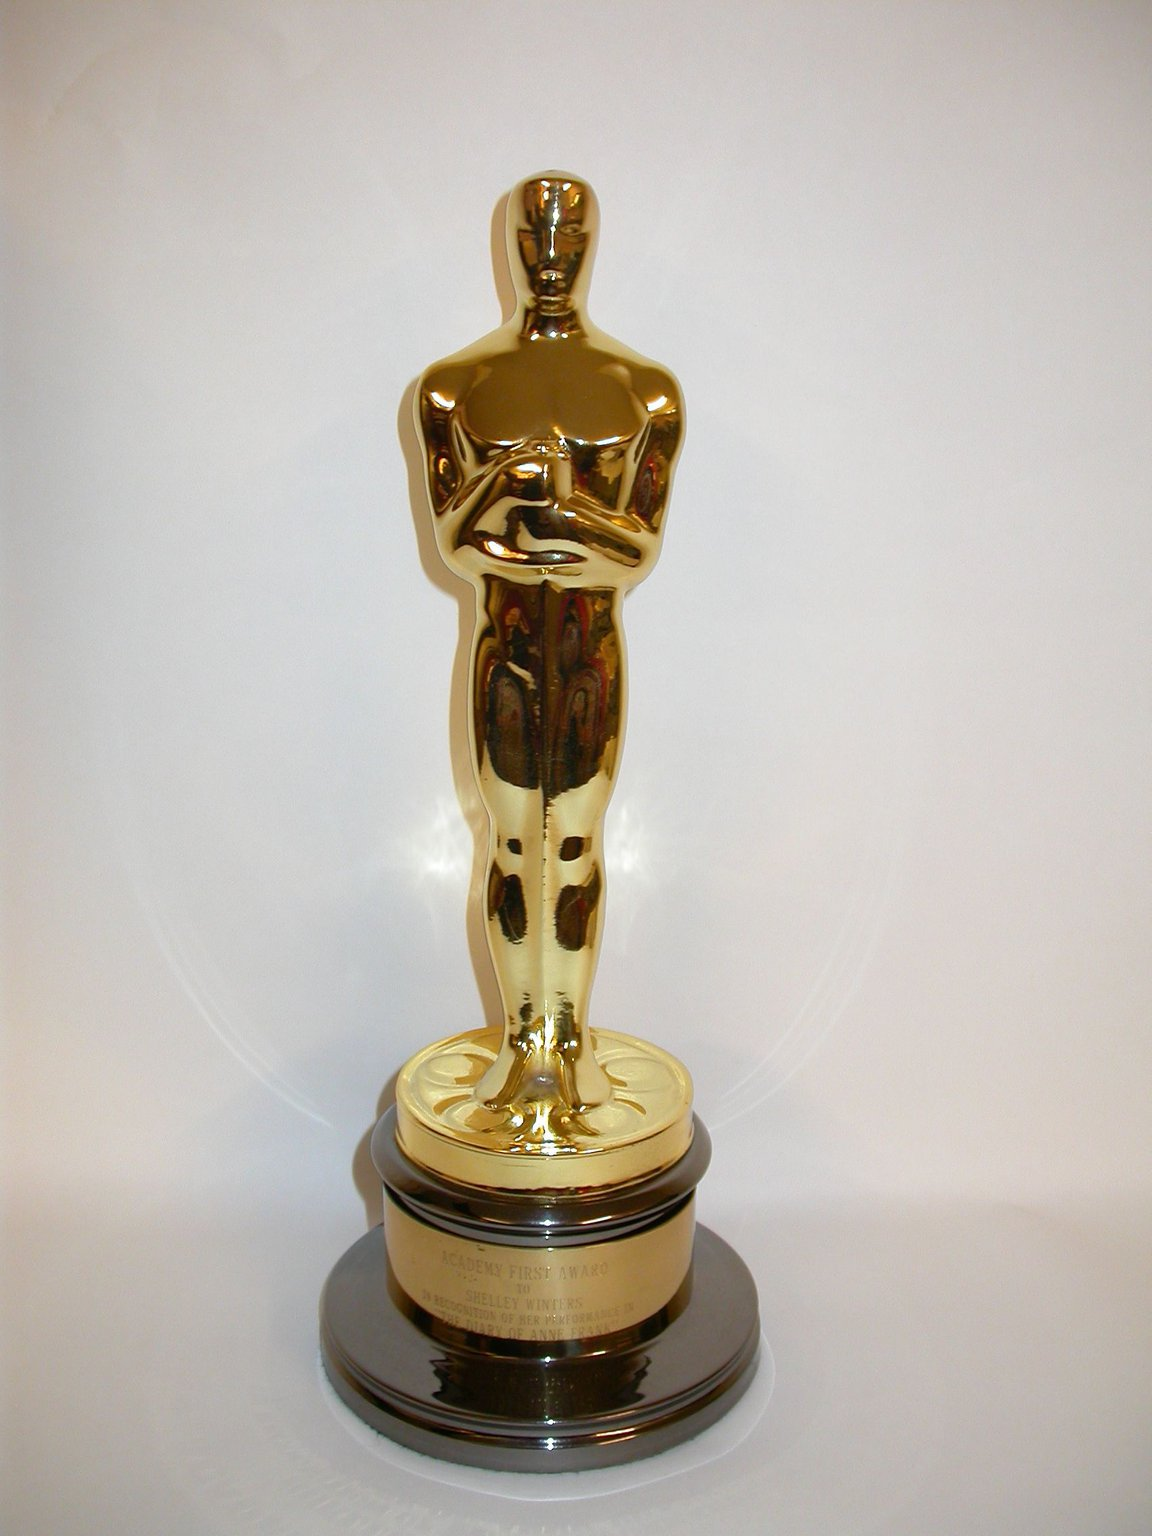 In 1960, Shelley Winters receives an Oscar for her role as Auguste van Pels in the film The Diary of Anne Frank. In 1975, she donates the statuette to the Anne Frank House.